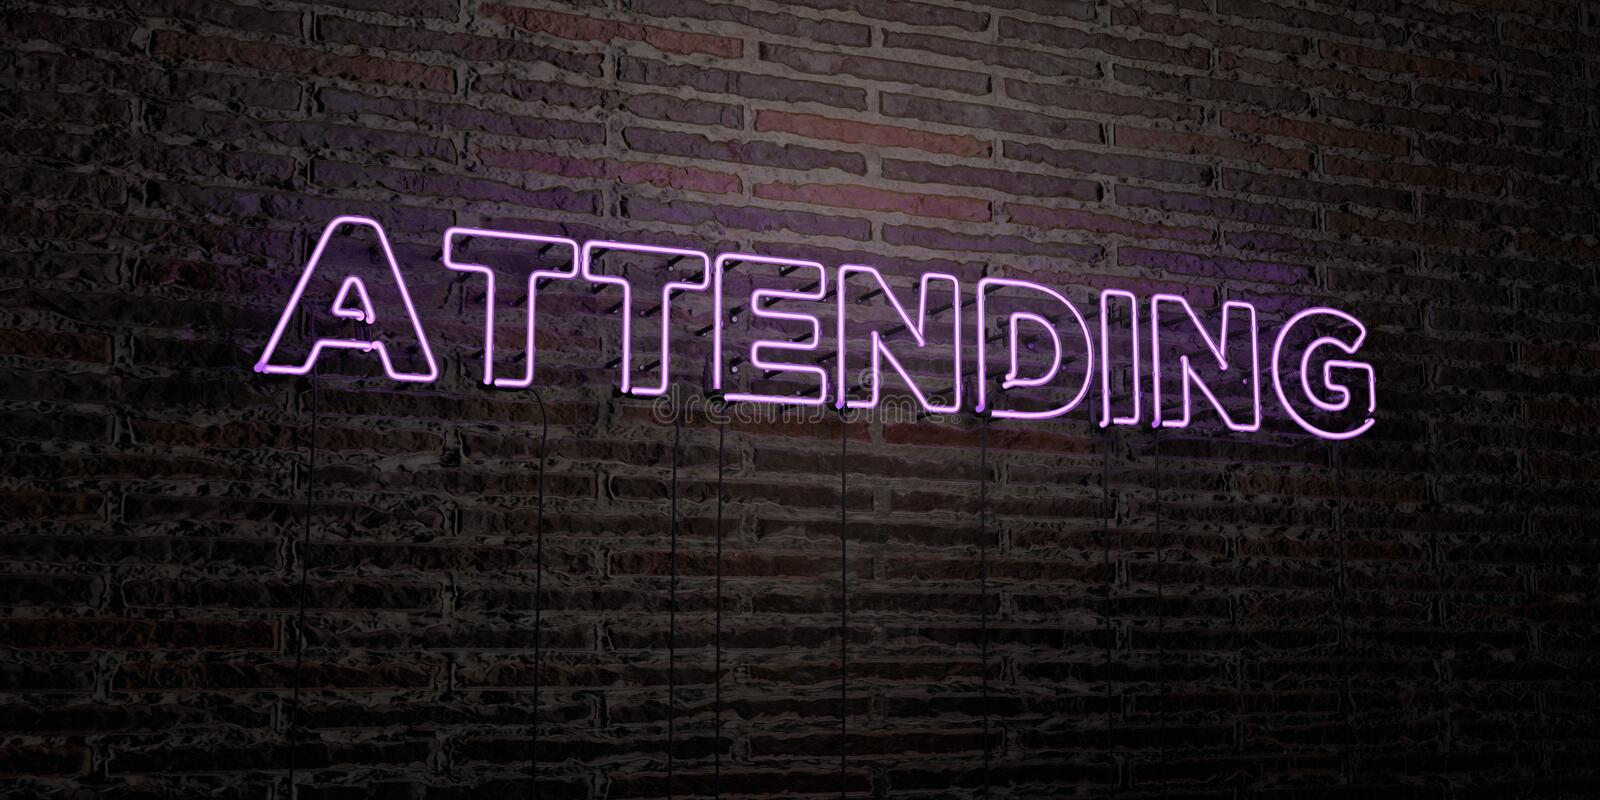 ATTENDING -Realistic Neon Sign on Brick Wall background - 3D rendered royalty free stock image. Can be used for online banner ads and direct mailers royalty free illustration